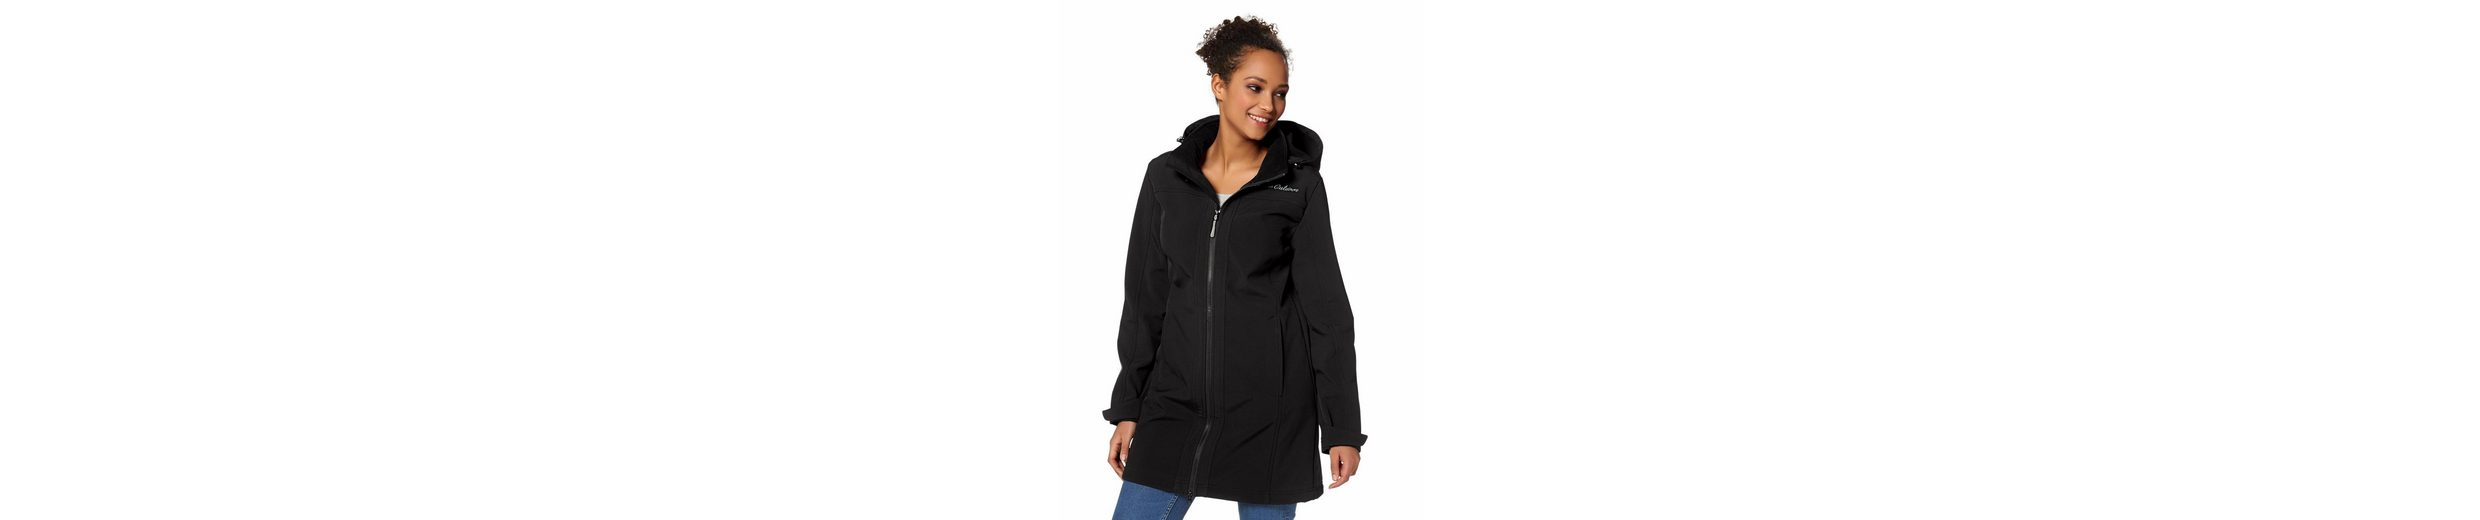 H.I.S Softshellparka, innen mit weichem Fleece